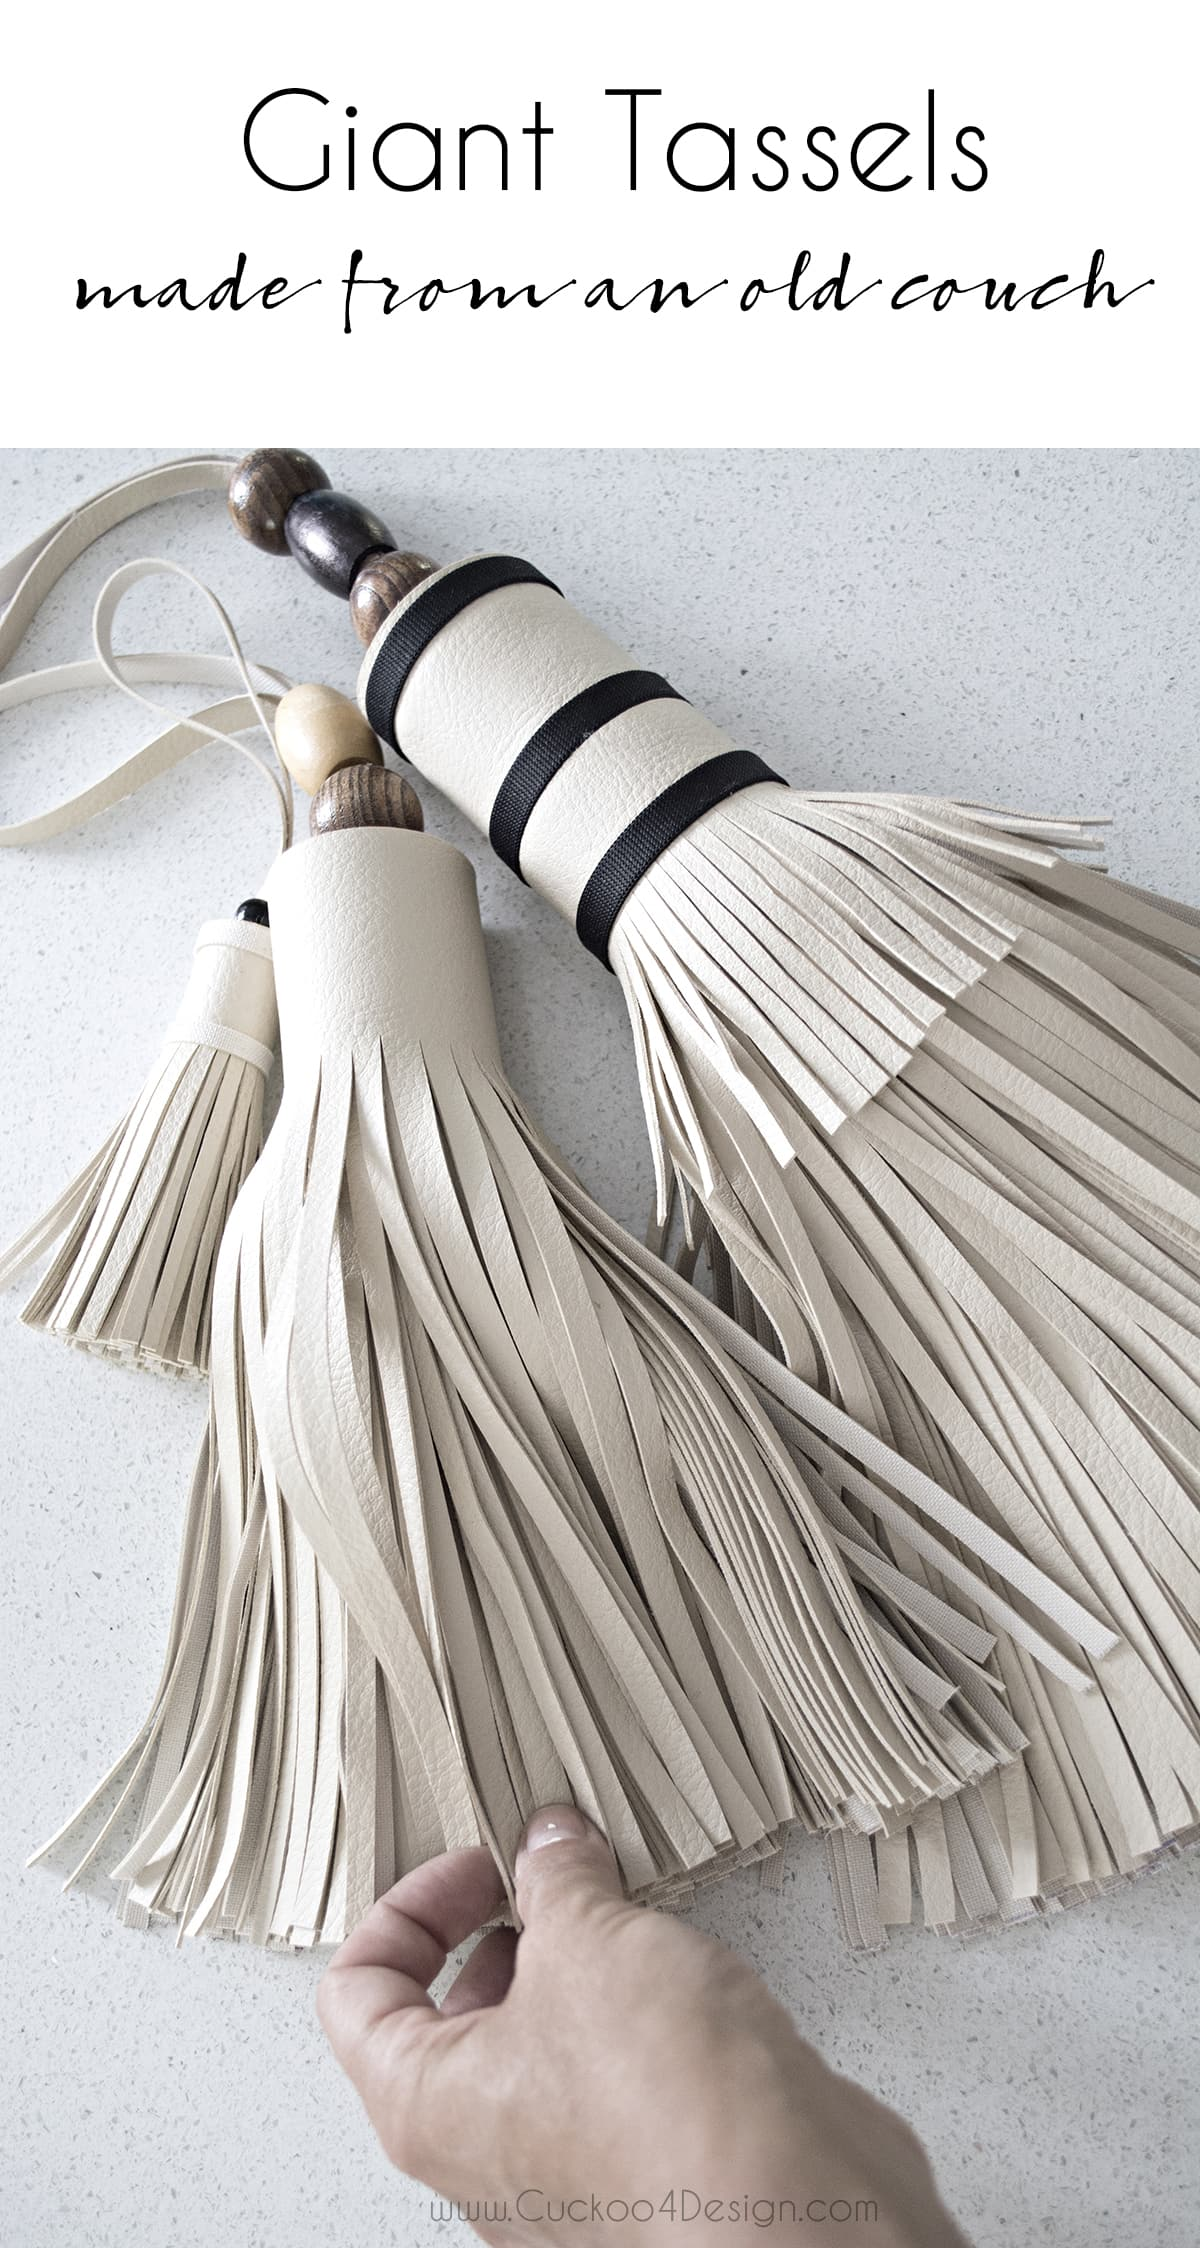 giant leather tassel from old an old leather couch